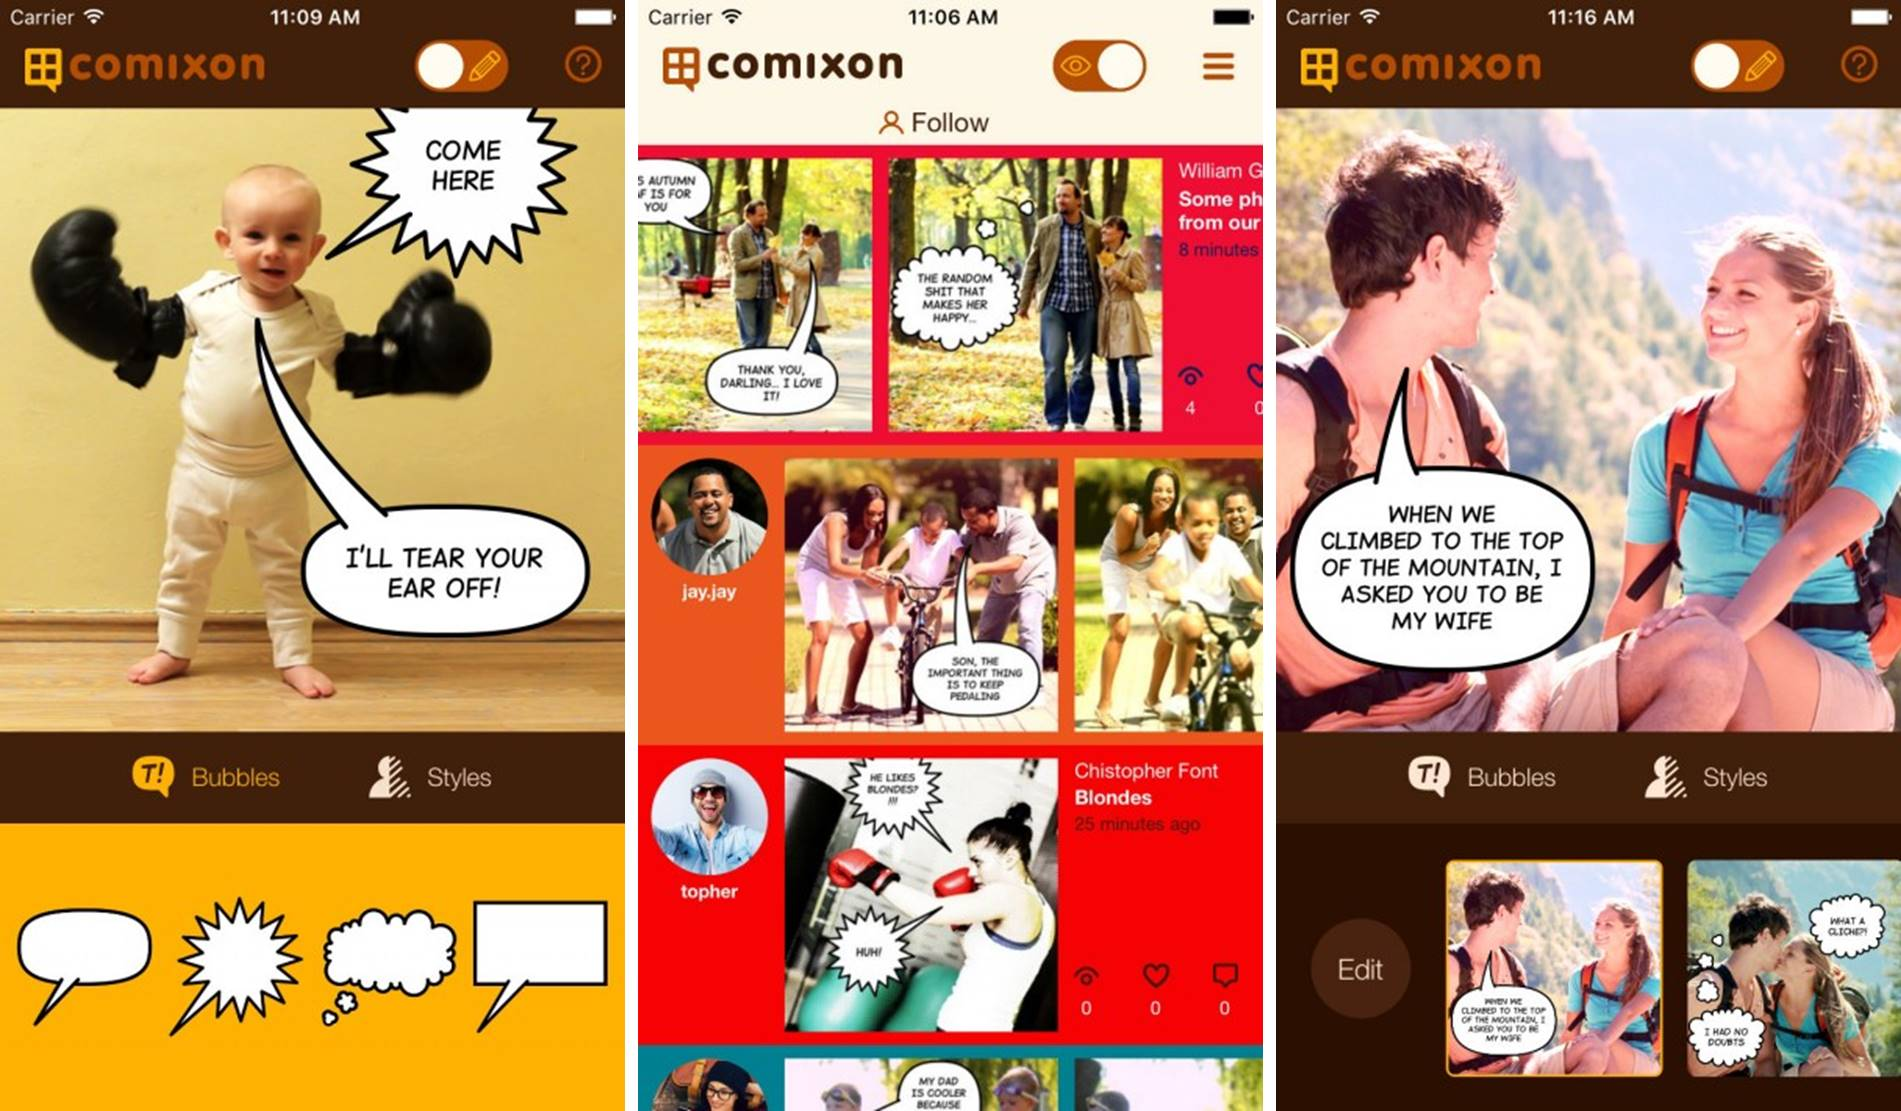 Comixon photography to comic strip app screenshots